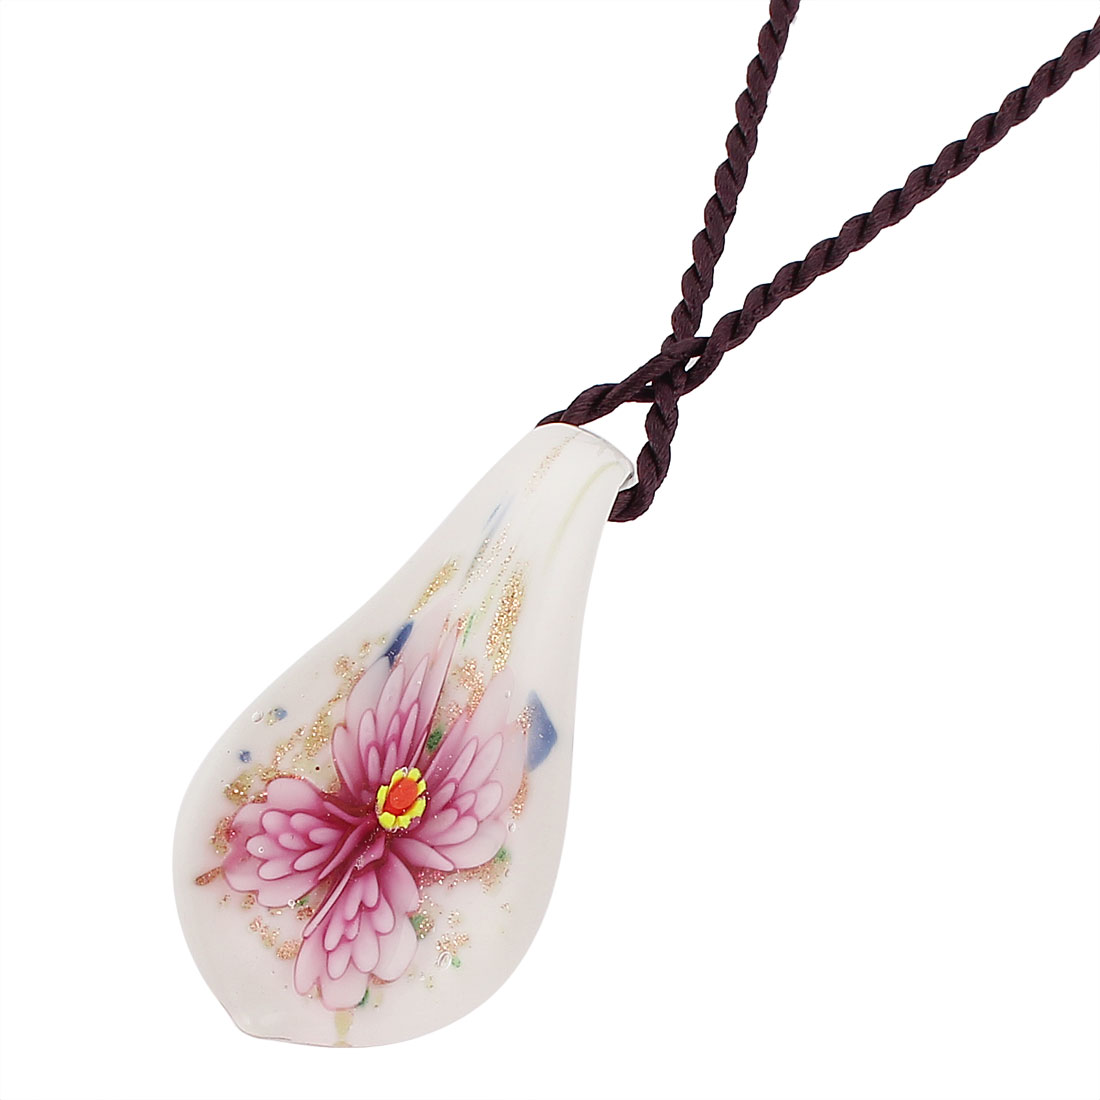 Nylon String Glass Pressed Floral Designed Pendant Necklace Neckwear Pink White